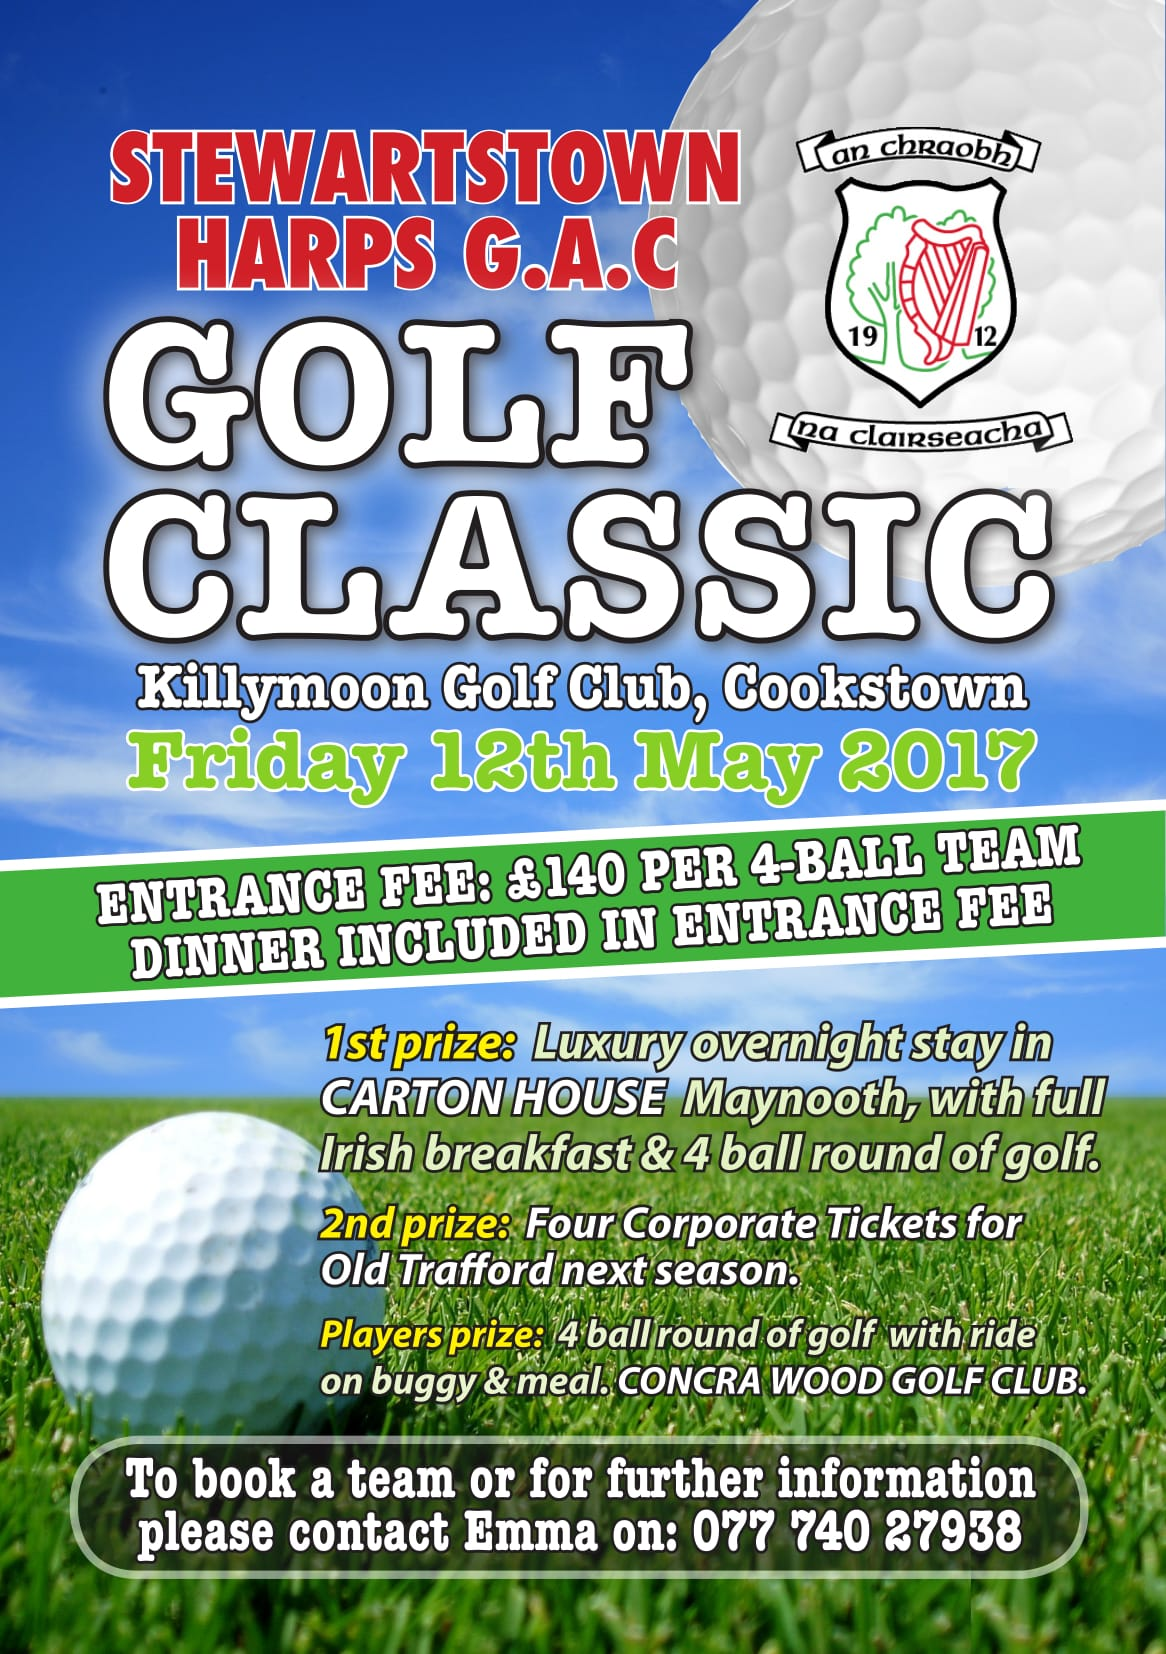 Stewartstown Harps Golf day – Friday 12th May